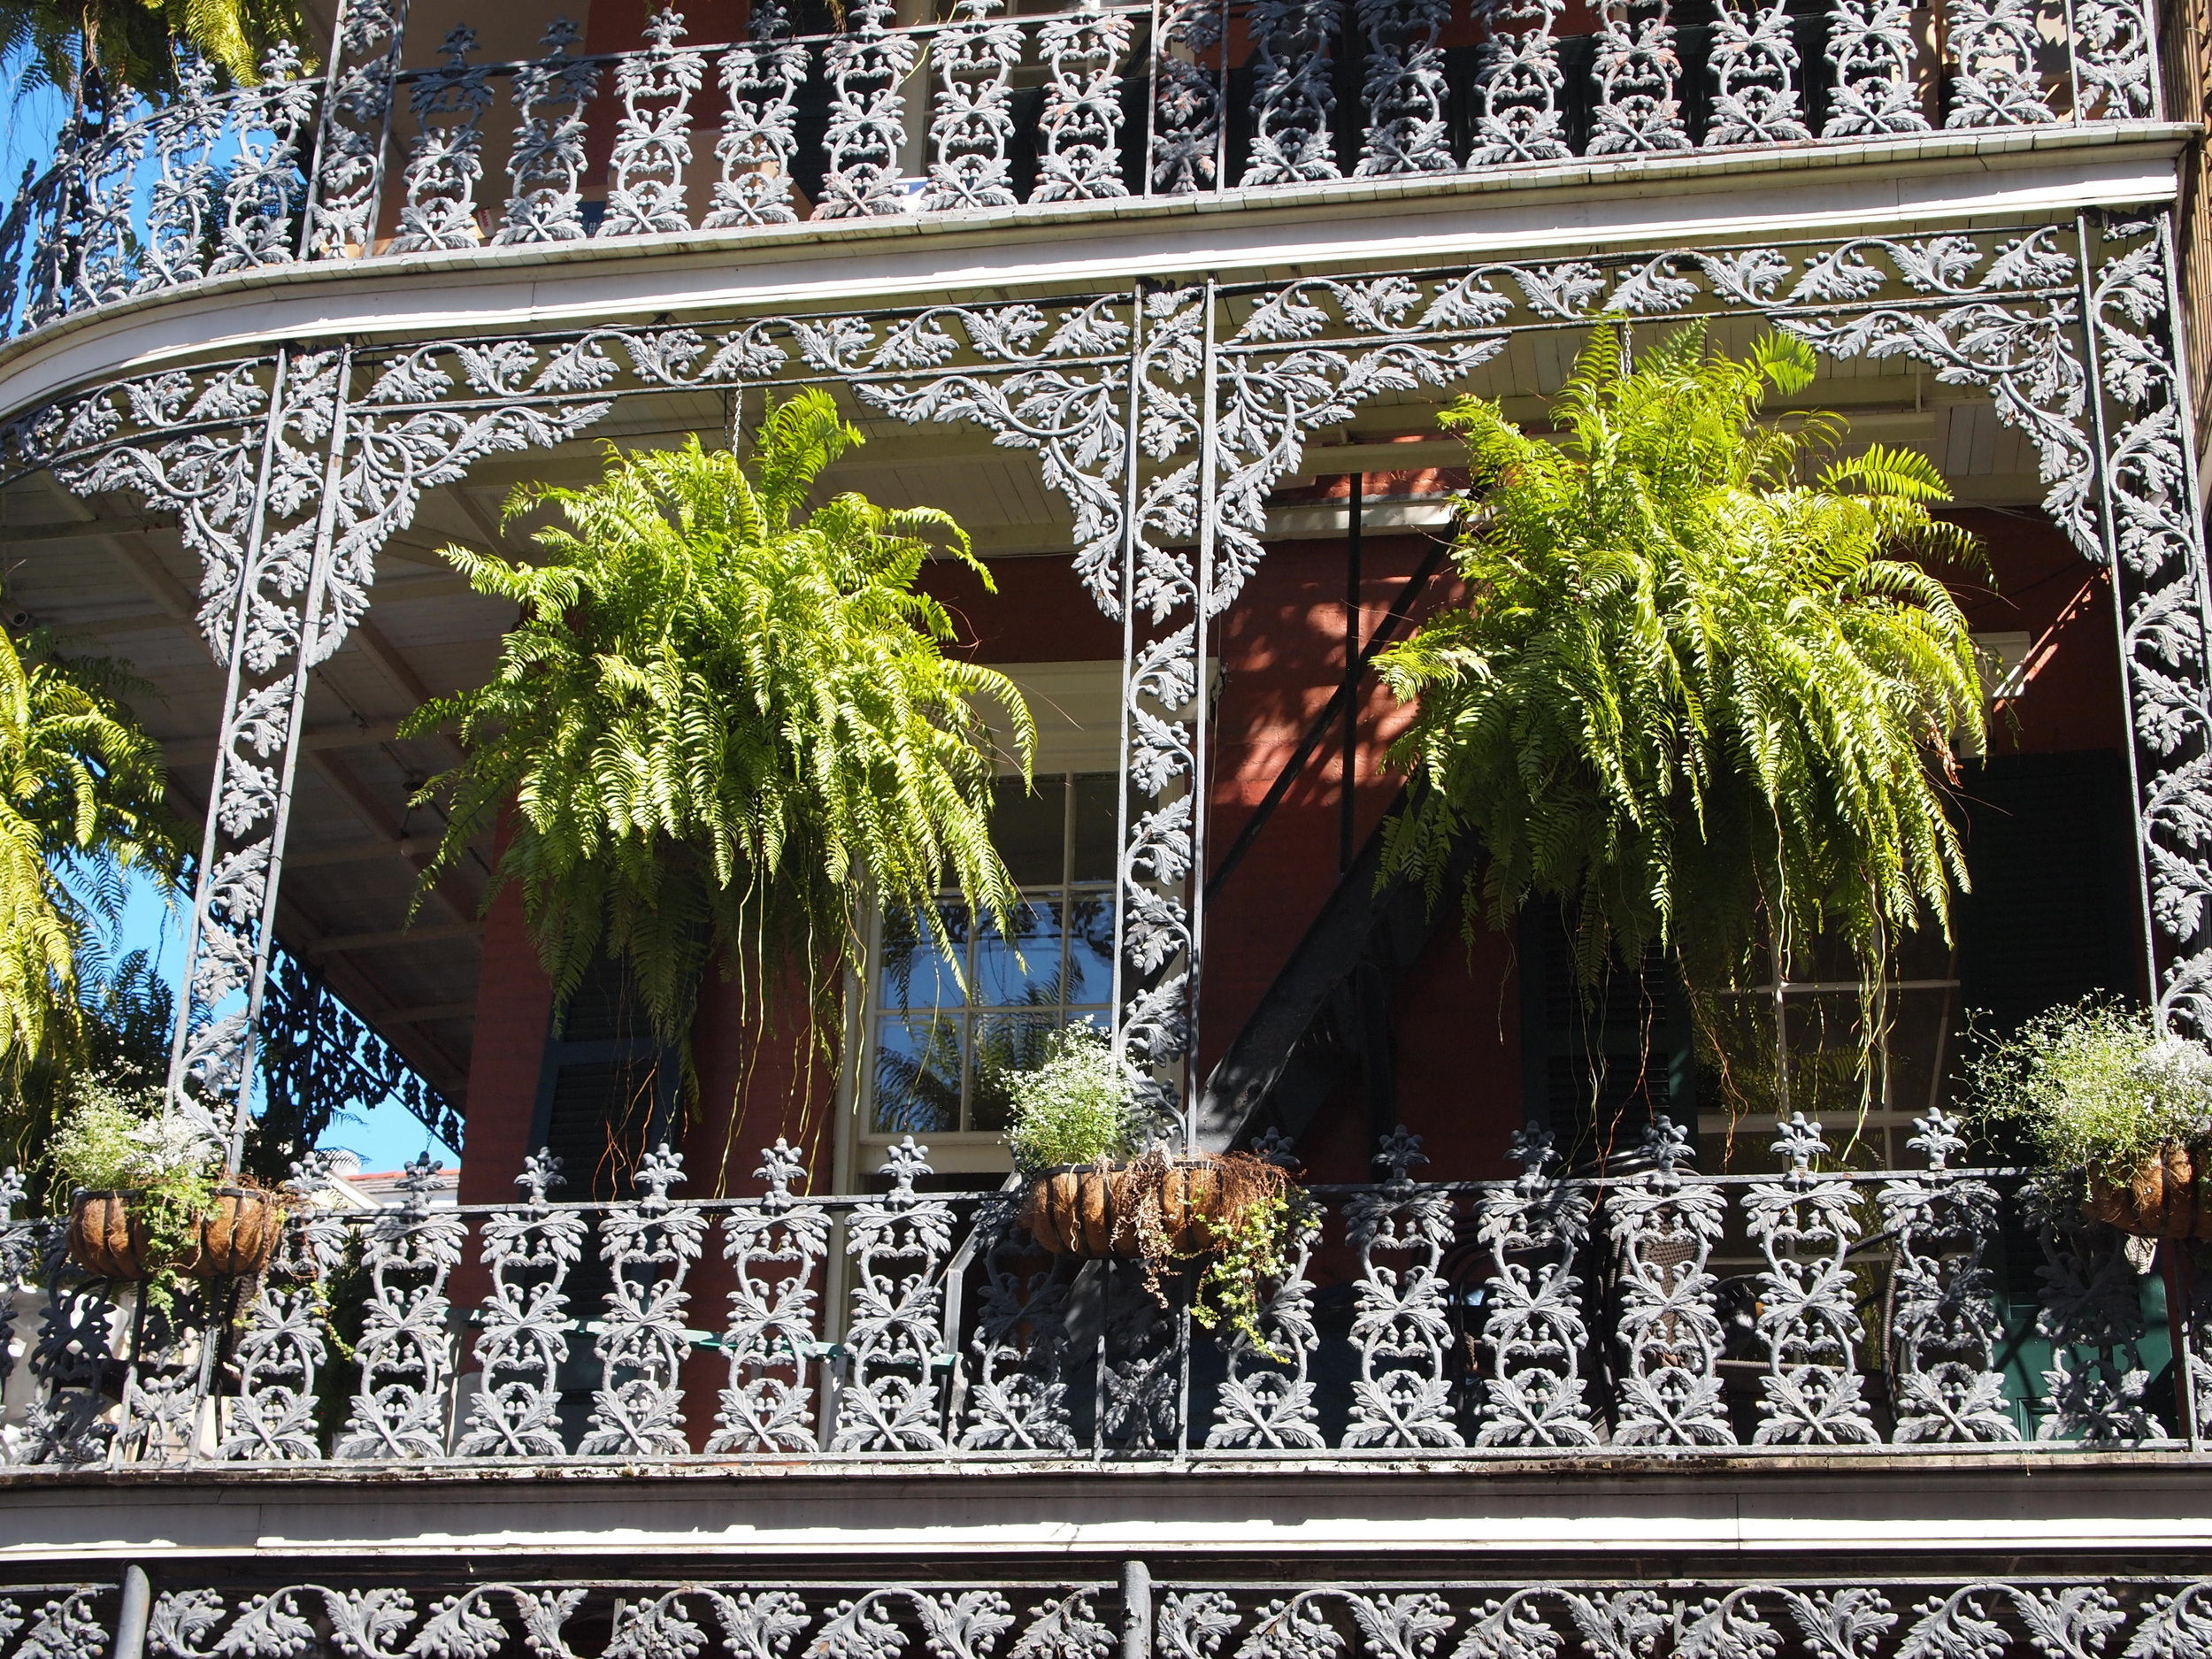 Ornate balconies of the French Quarter, New Orleans (image by Jacqui Gibson).